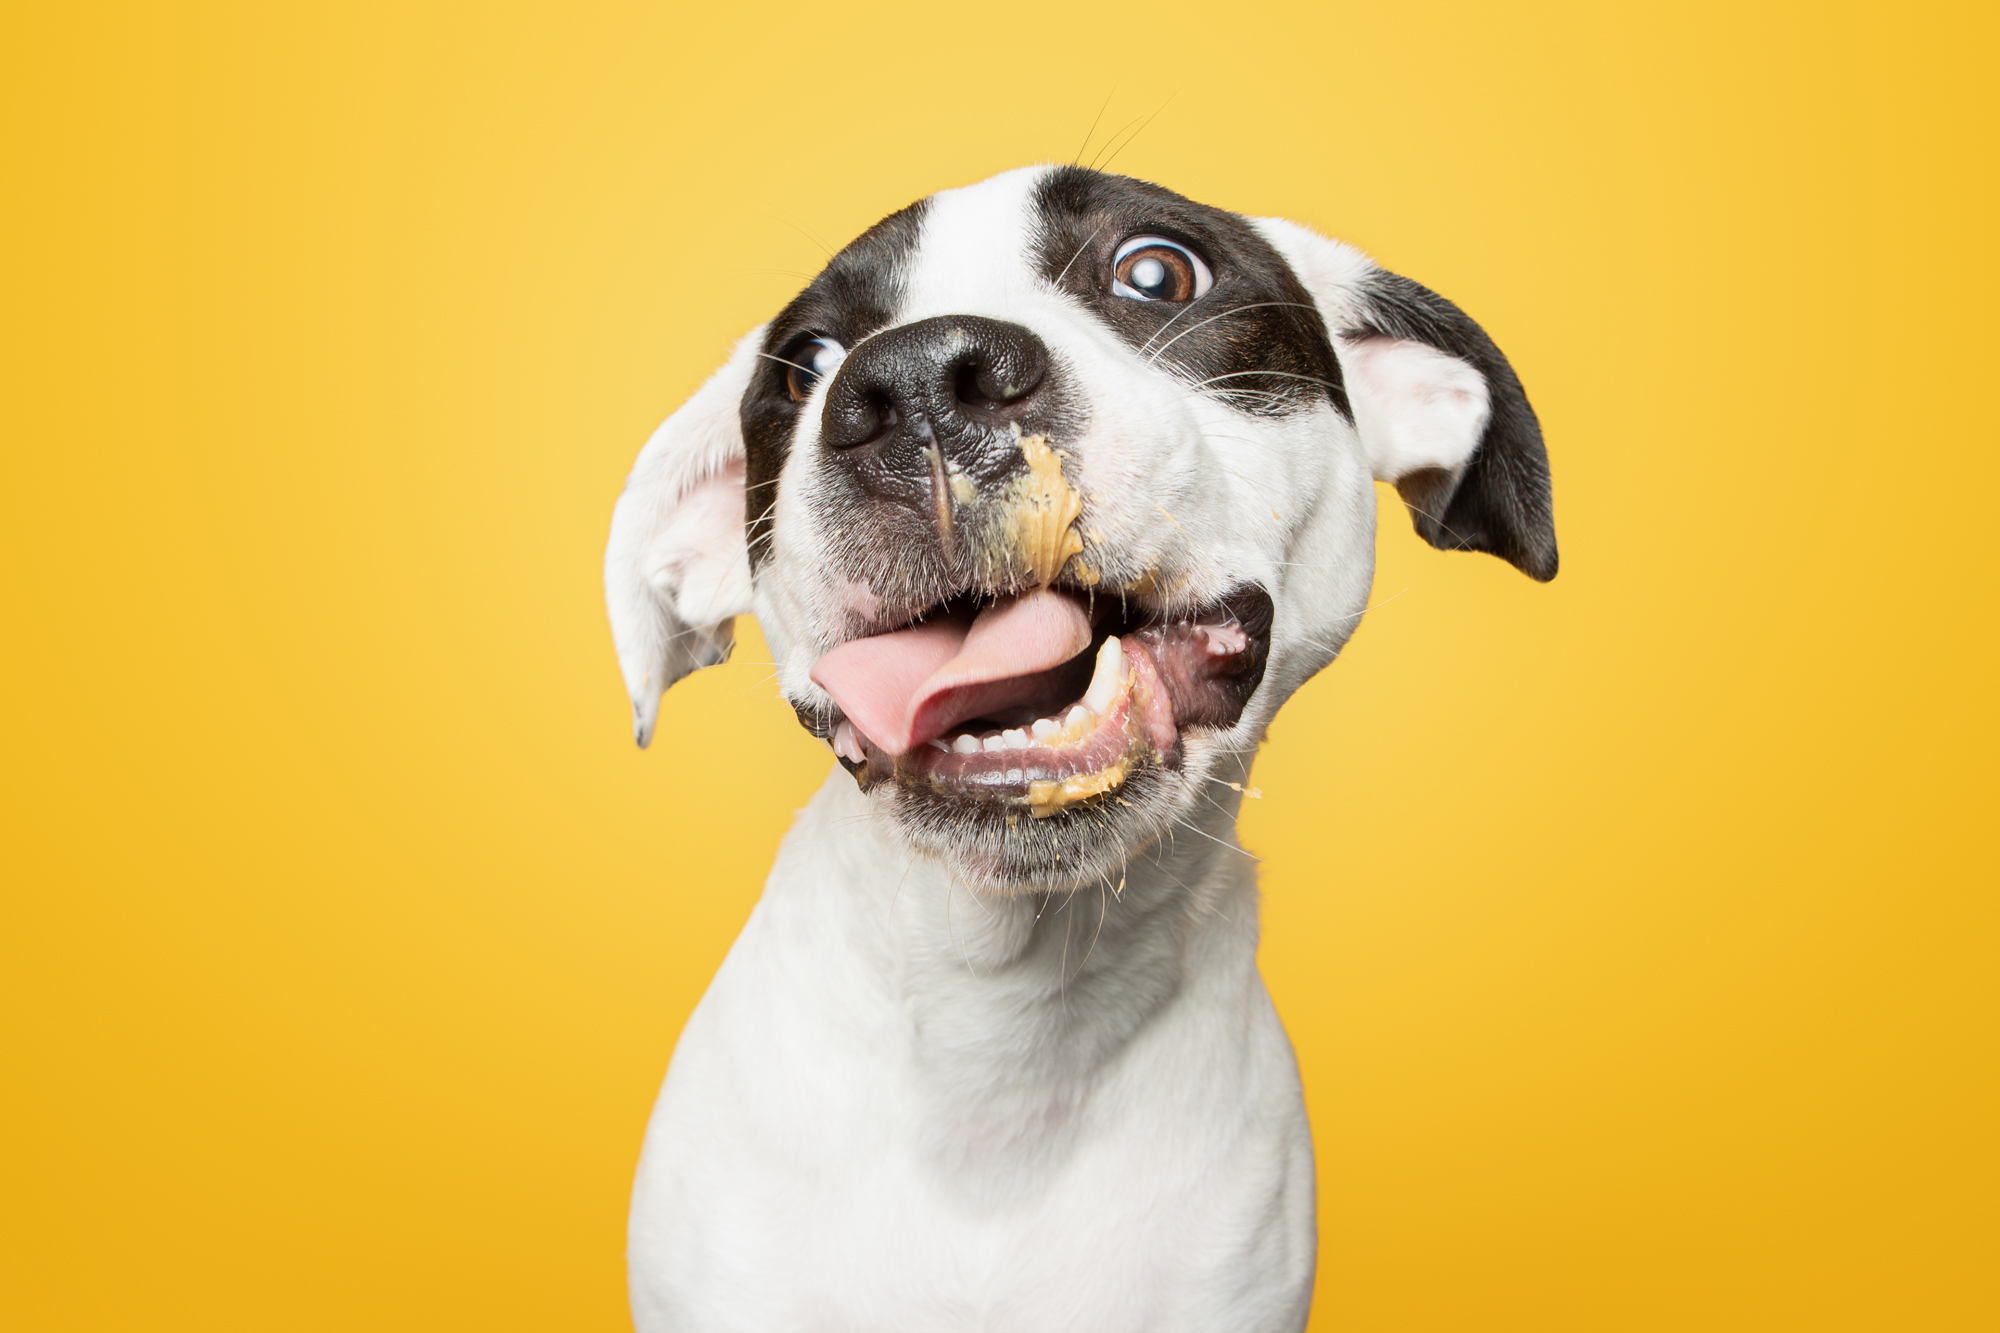 These Photos Of Rescue Puppies Eating Peanut Butter Will Make Your Day, I Guarantee It.